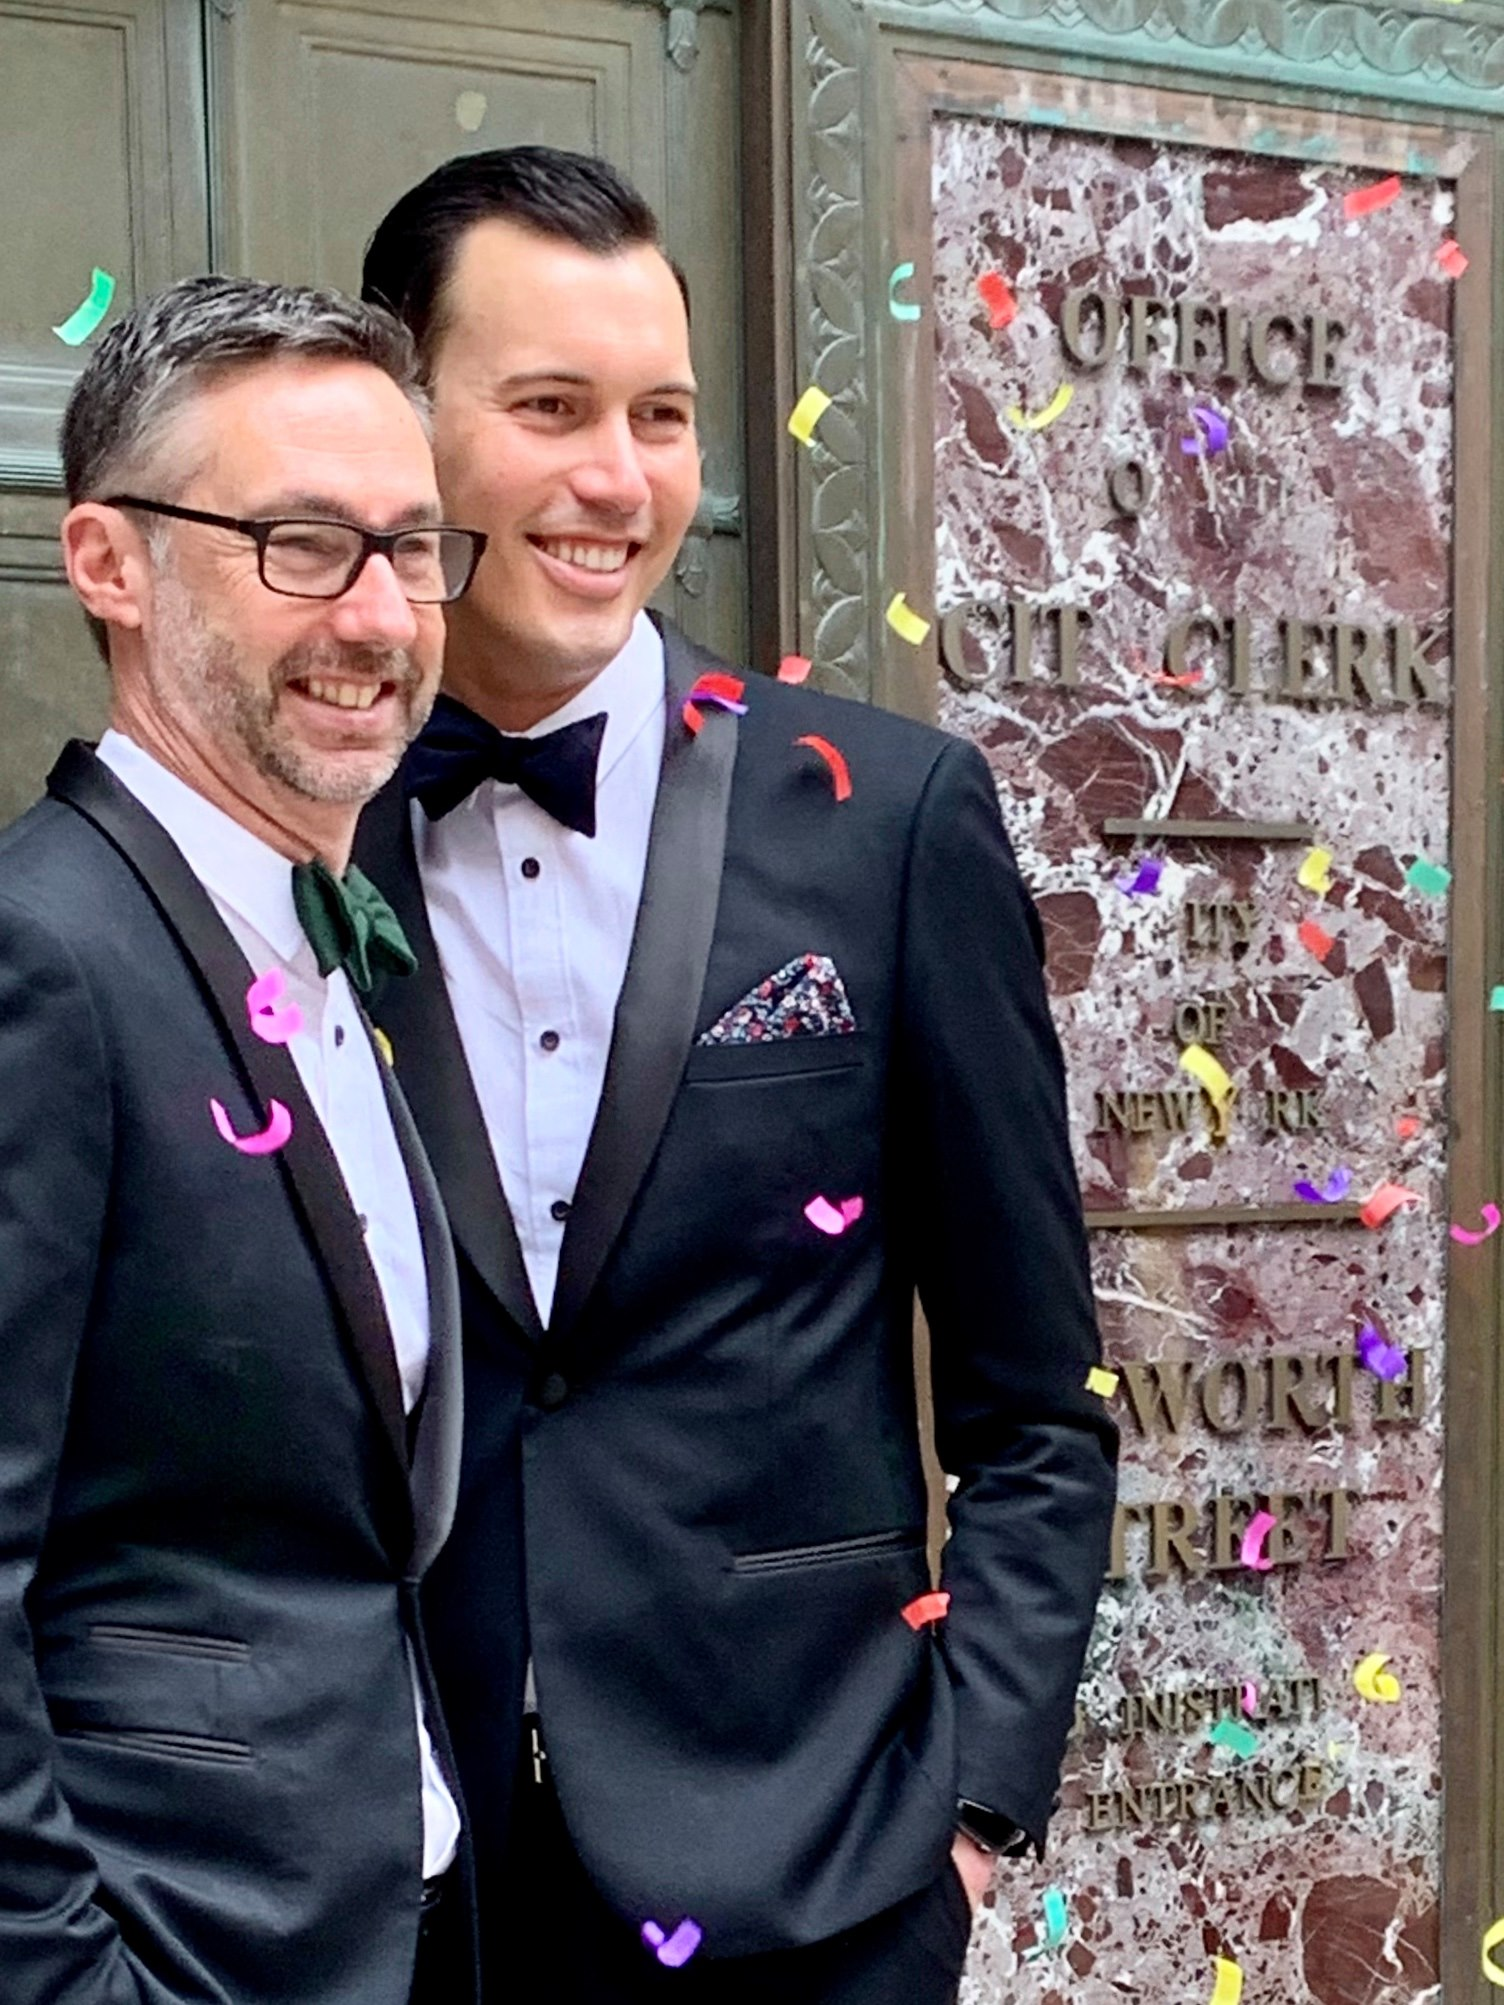 Just married! Congratulations to the newlyweds who tied the knot in New York l...